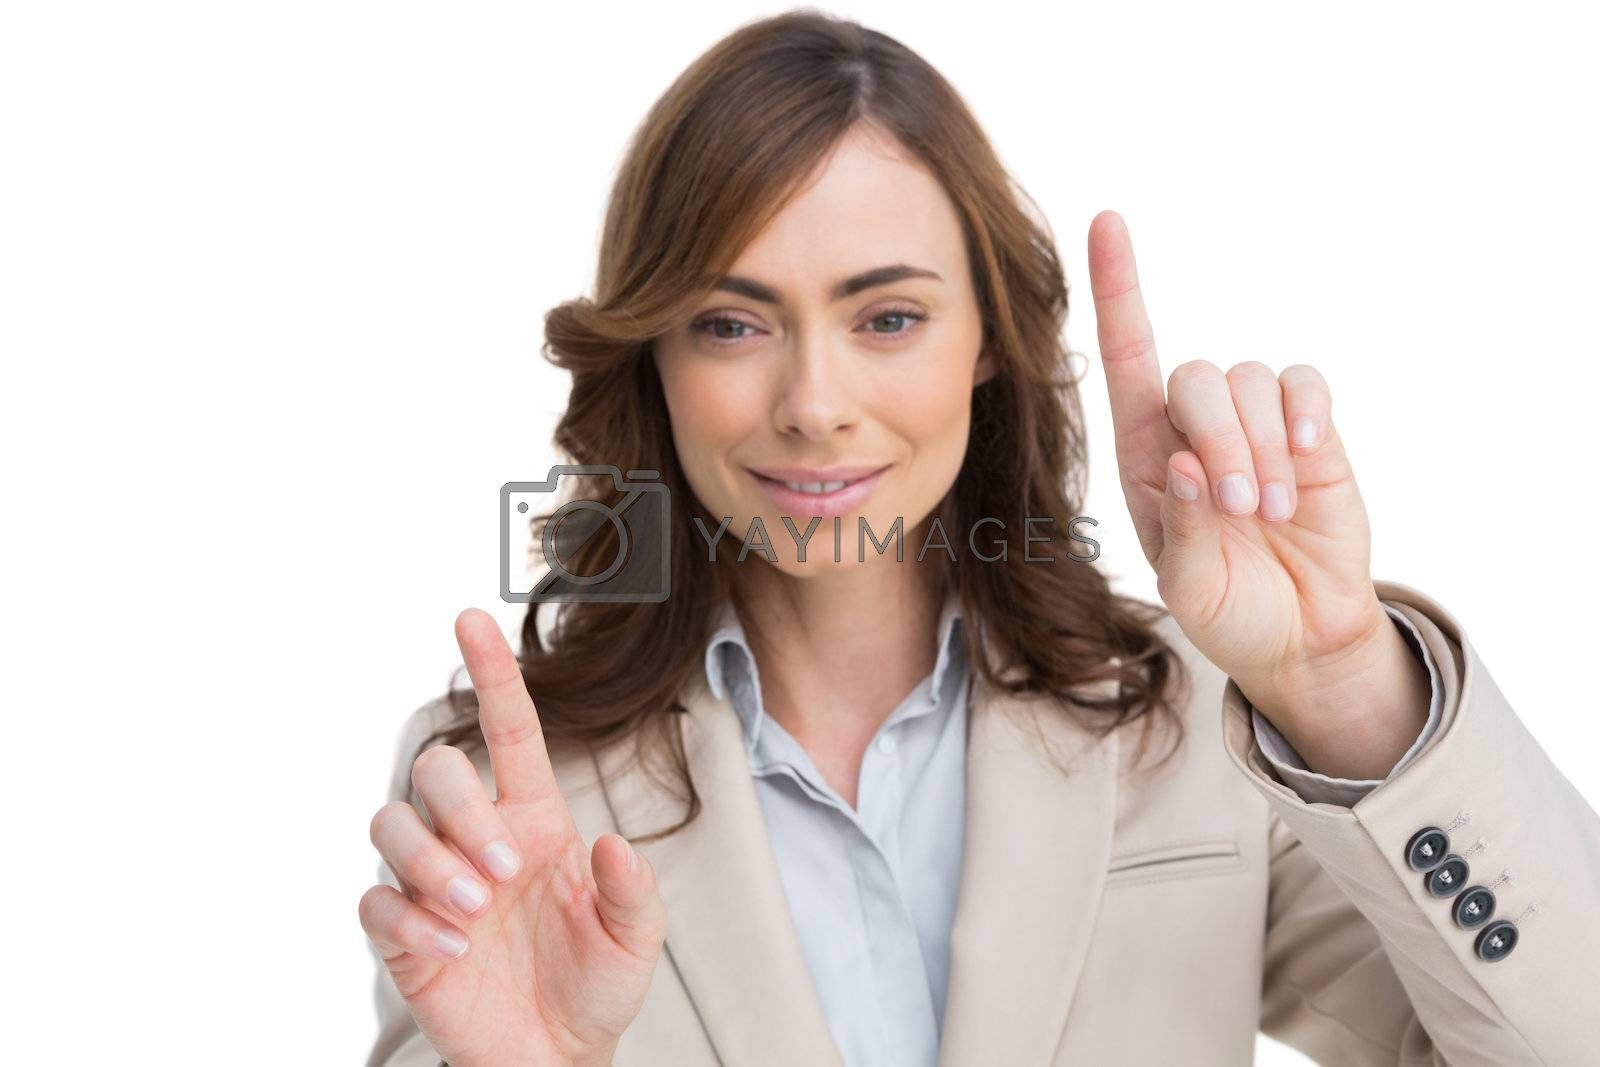 Classy businesswoman touching invisible screen by Wavebreakmedia